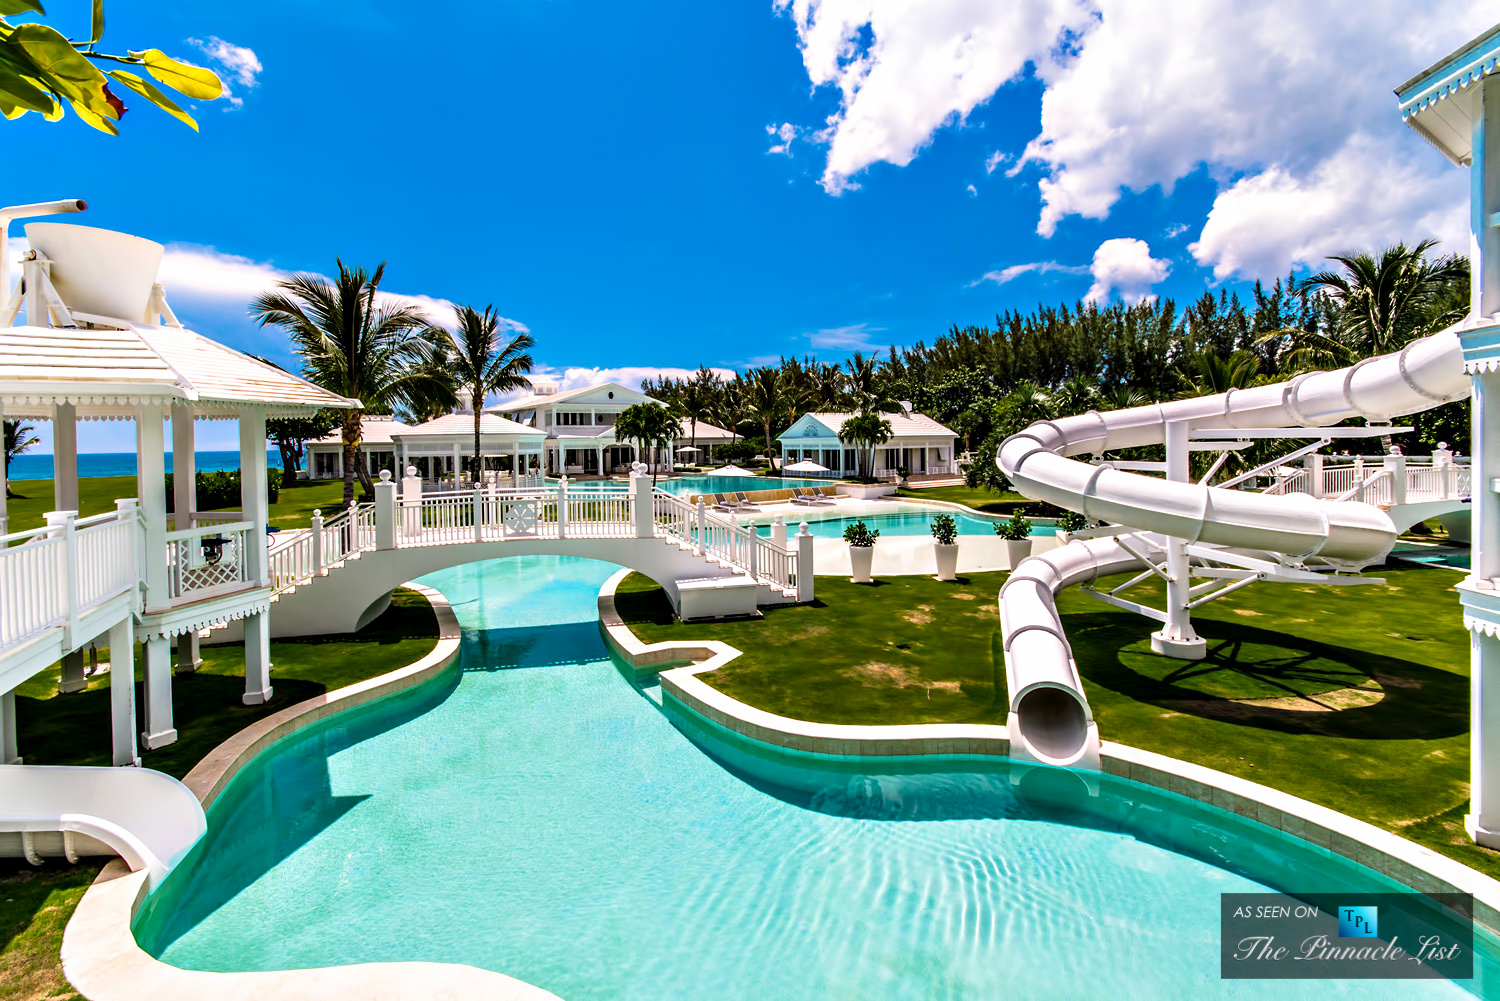 celine dion 39 s custom home with water slide lazy river attractions